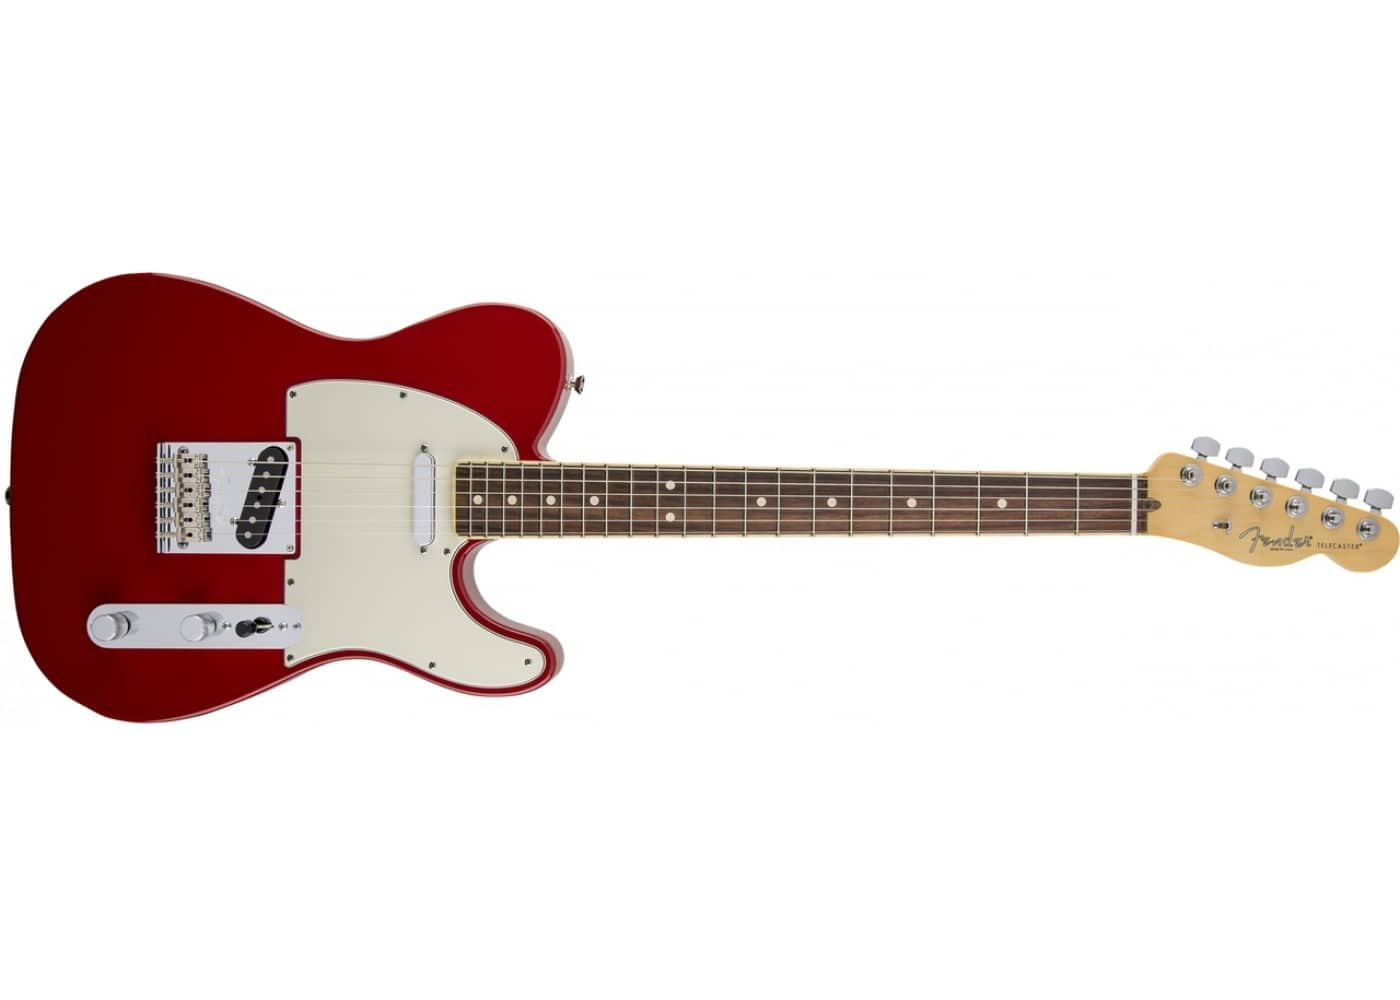 Fender USA Ltd Edition American Standard Telecaster Guitar  $890 + Free S/H